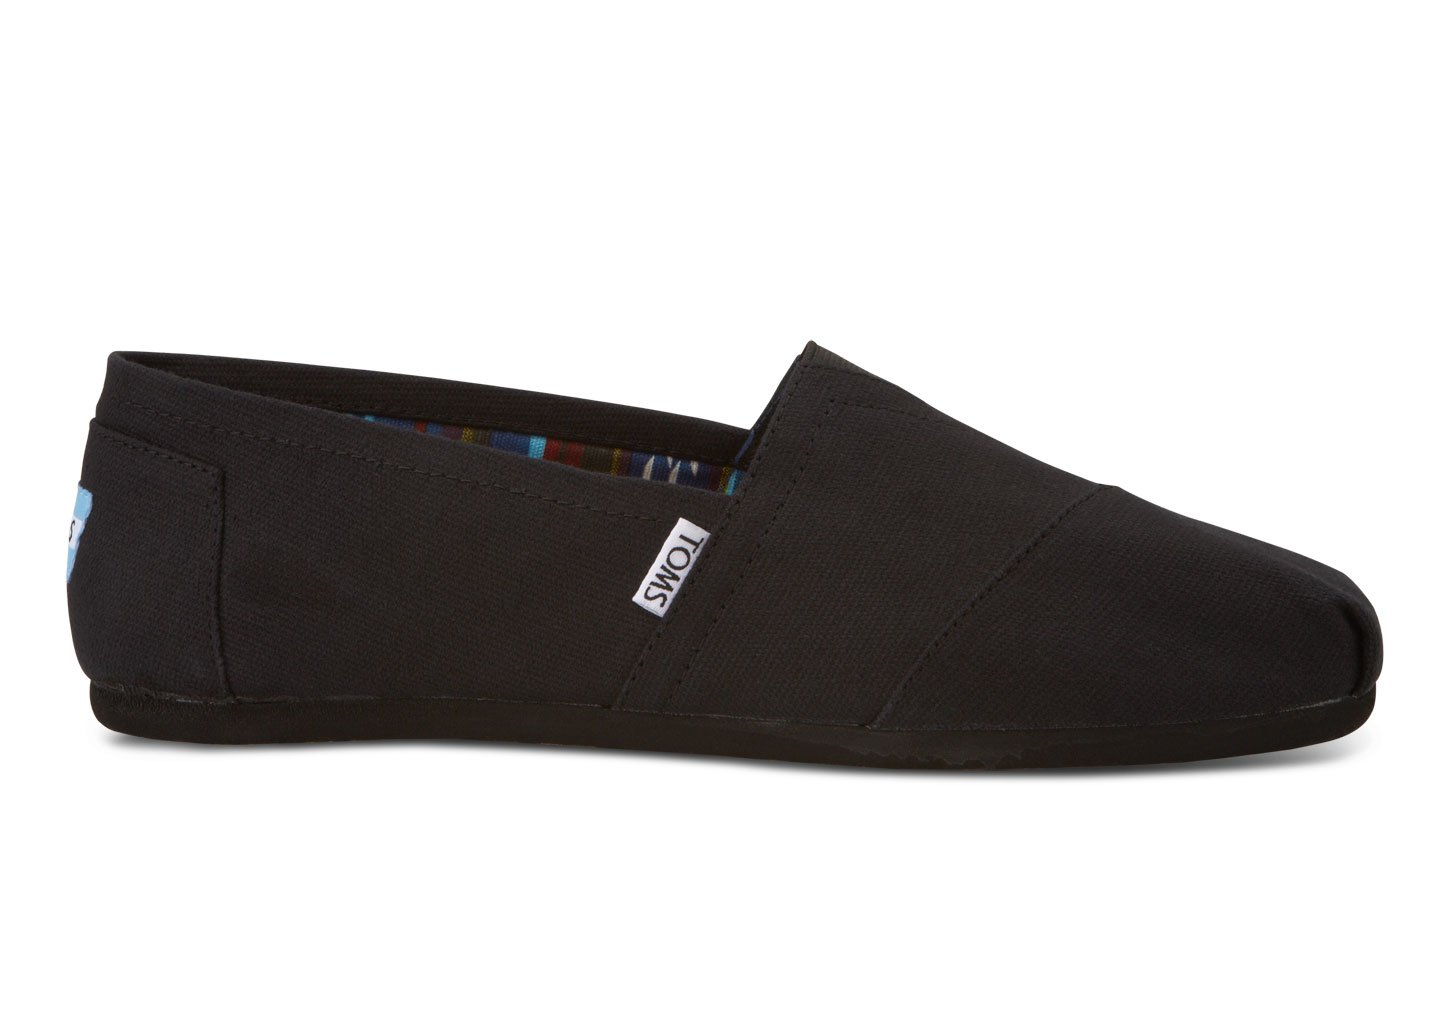 TOMS Men's Classic Canvas Slip-On, Black/Black – 12 D(M) US